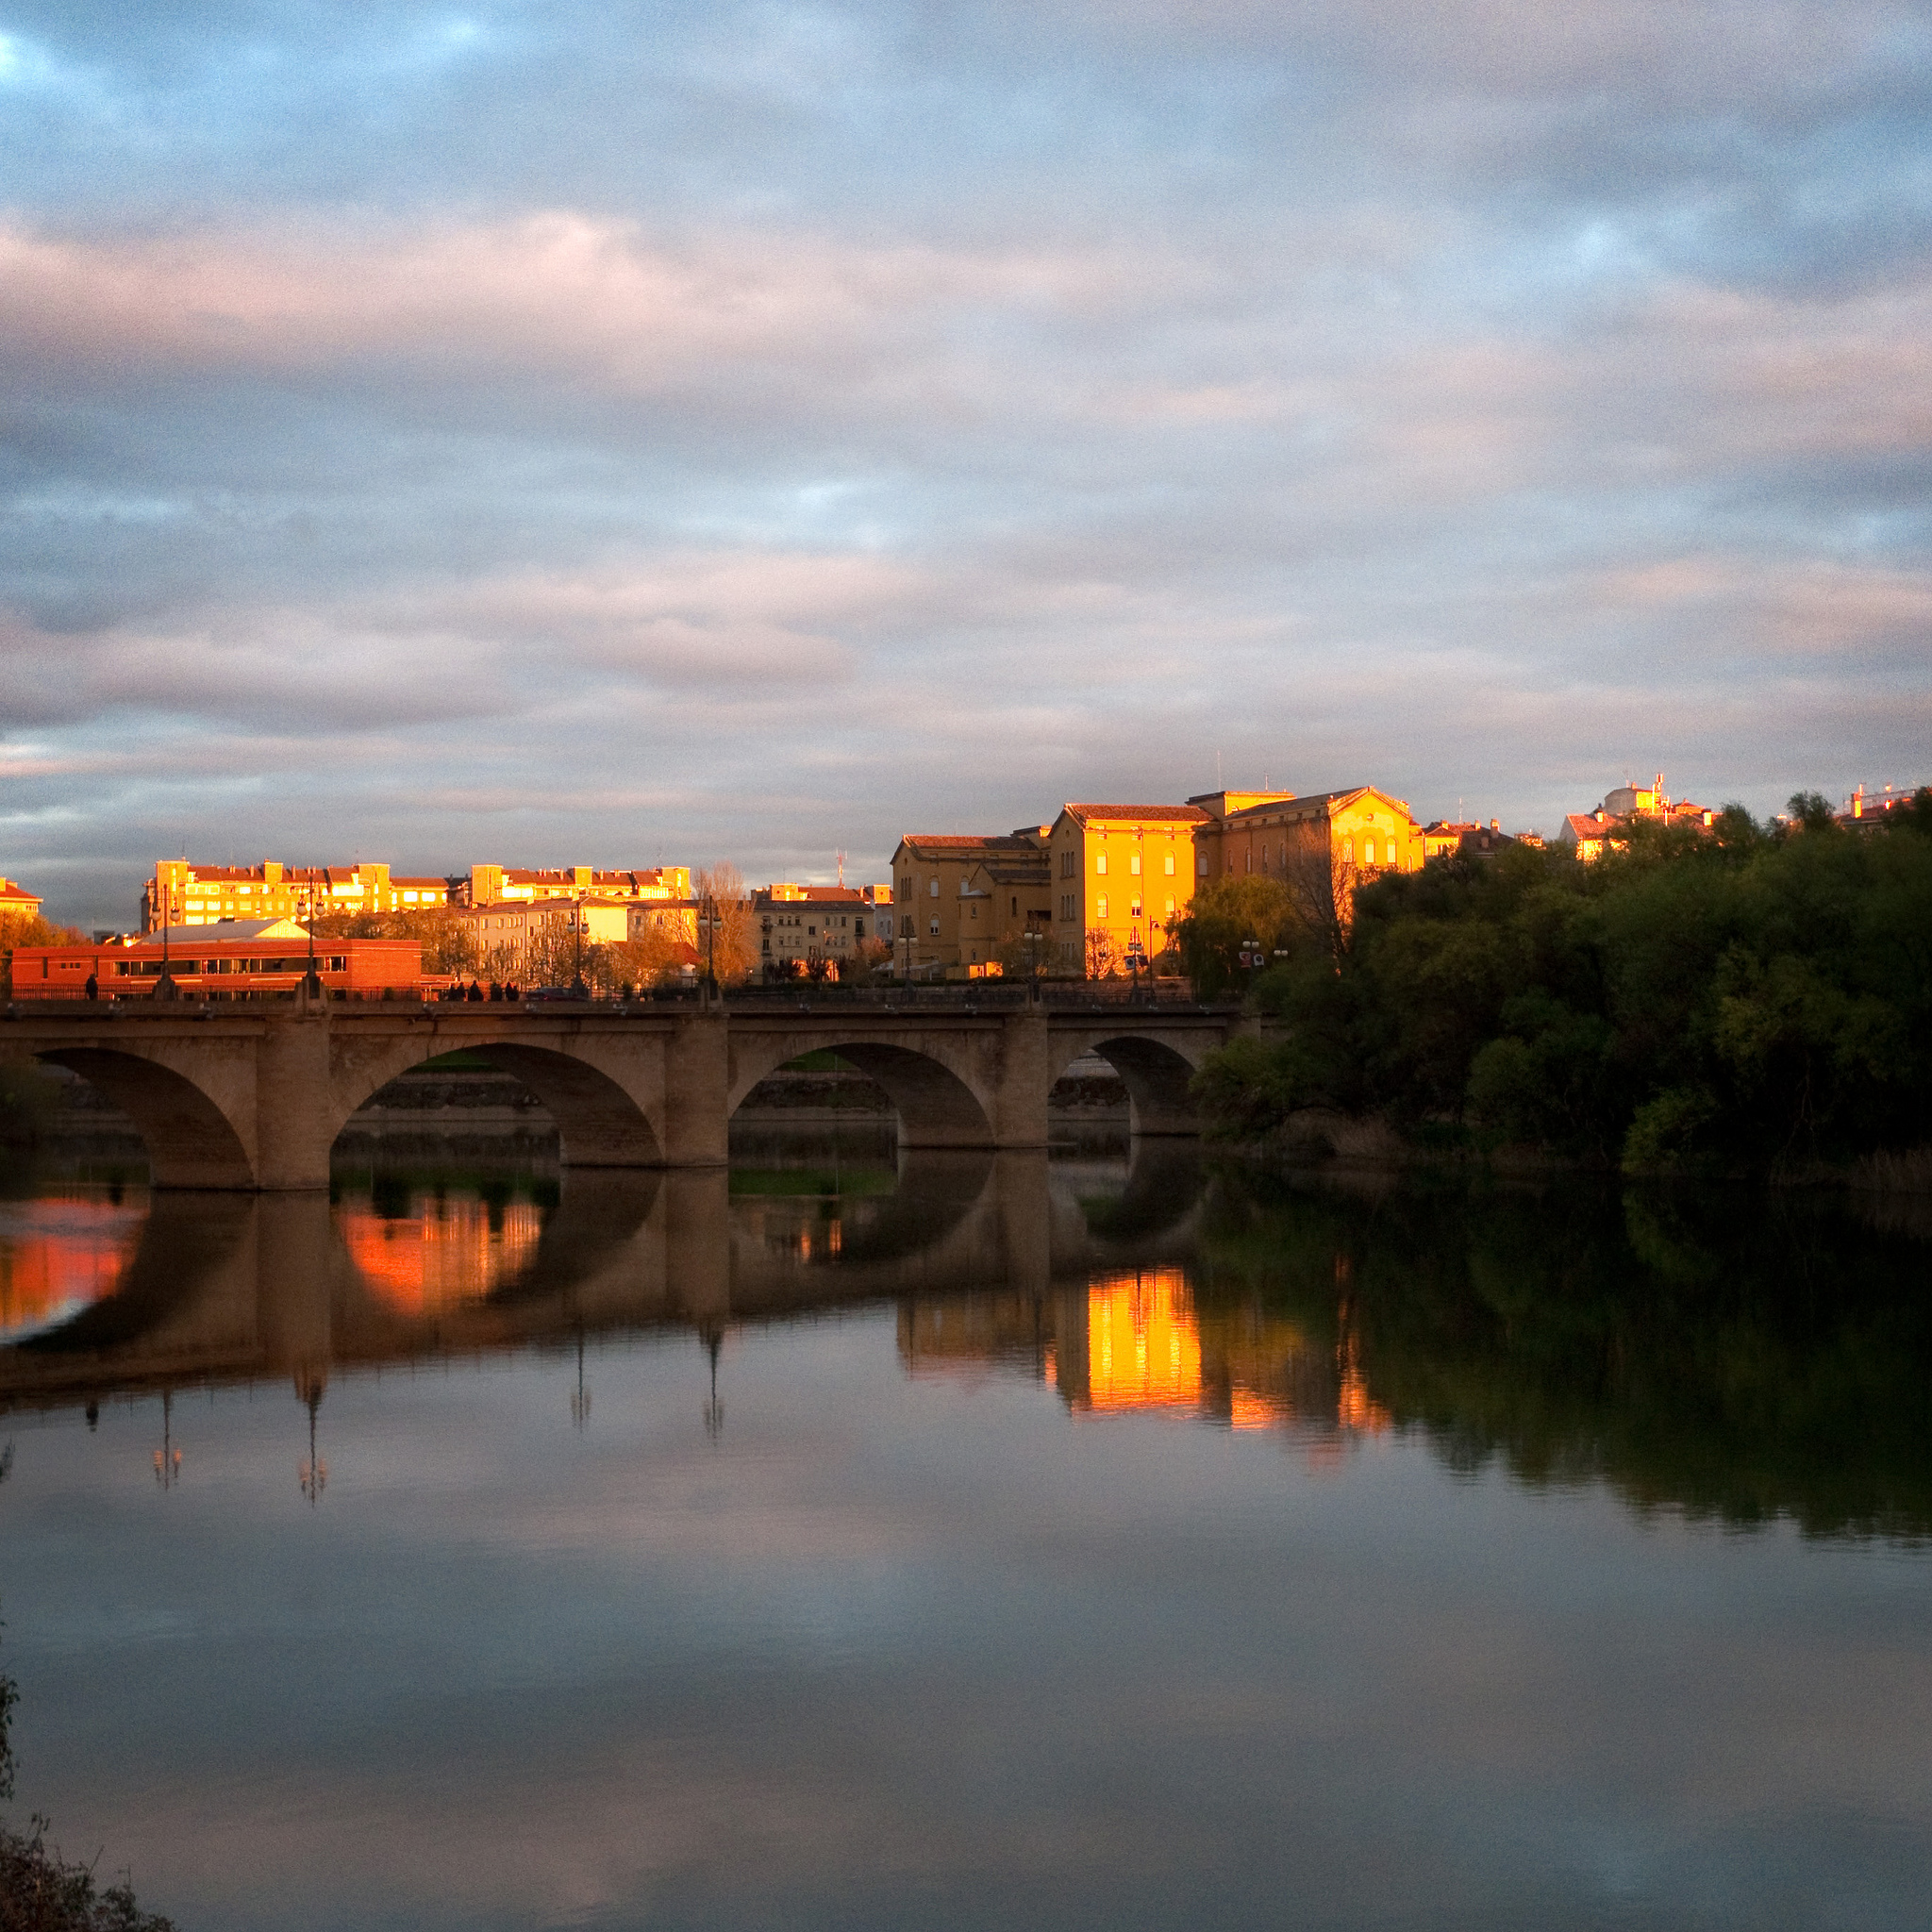 Logroño stone bridge over a river and during the sunset